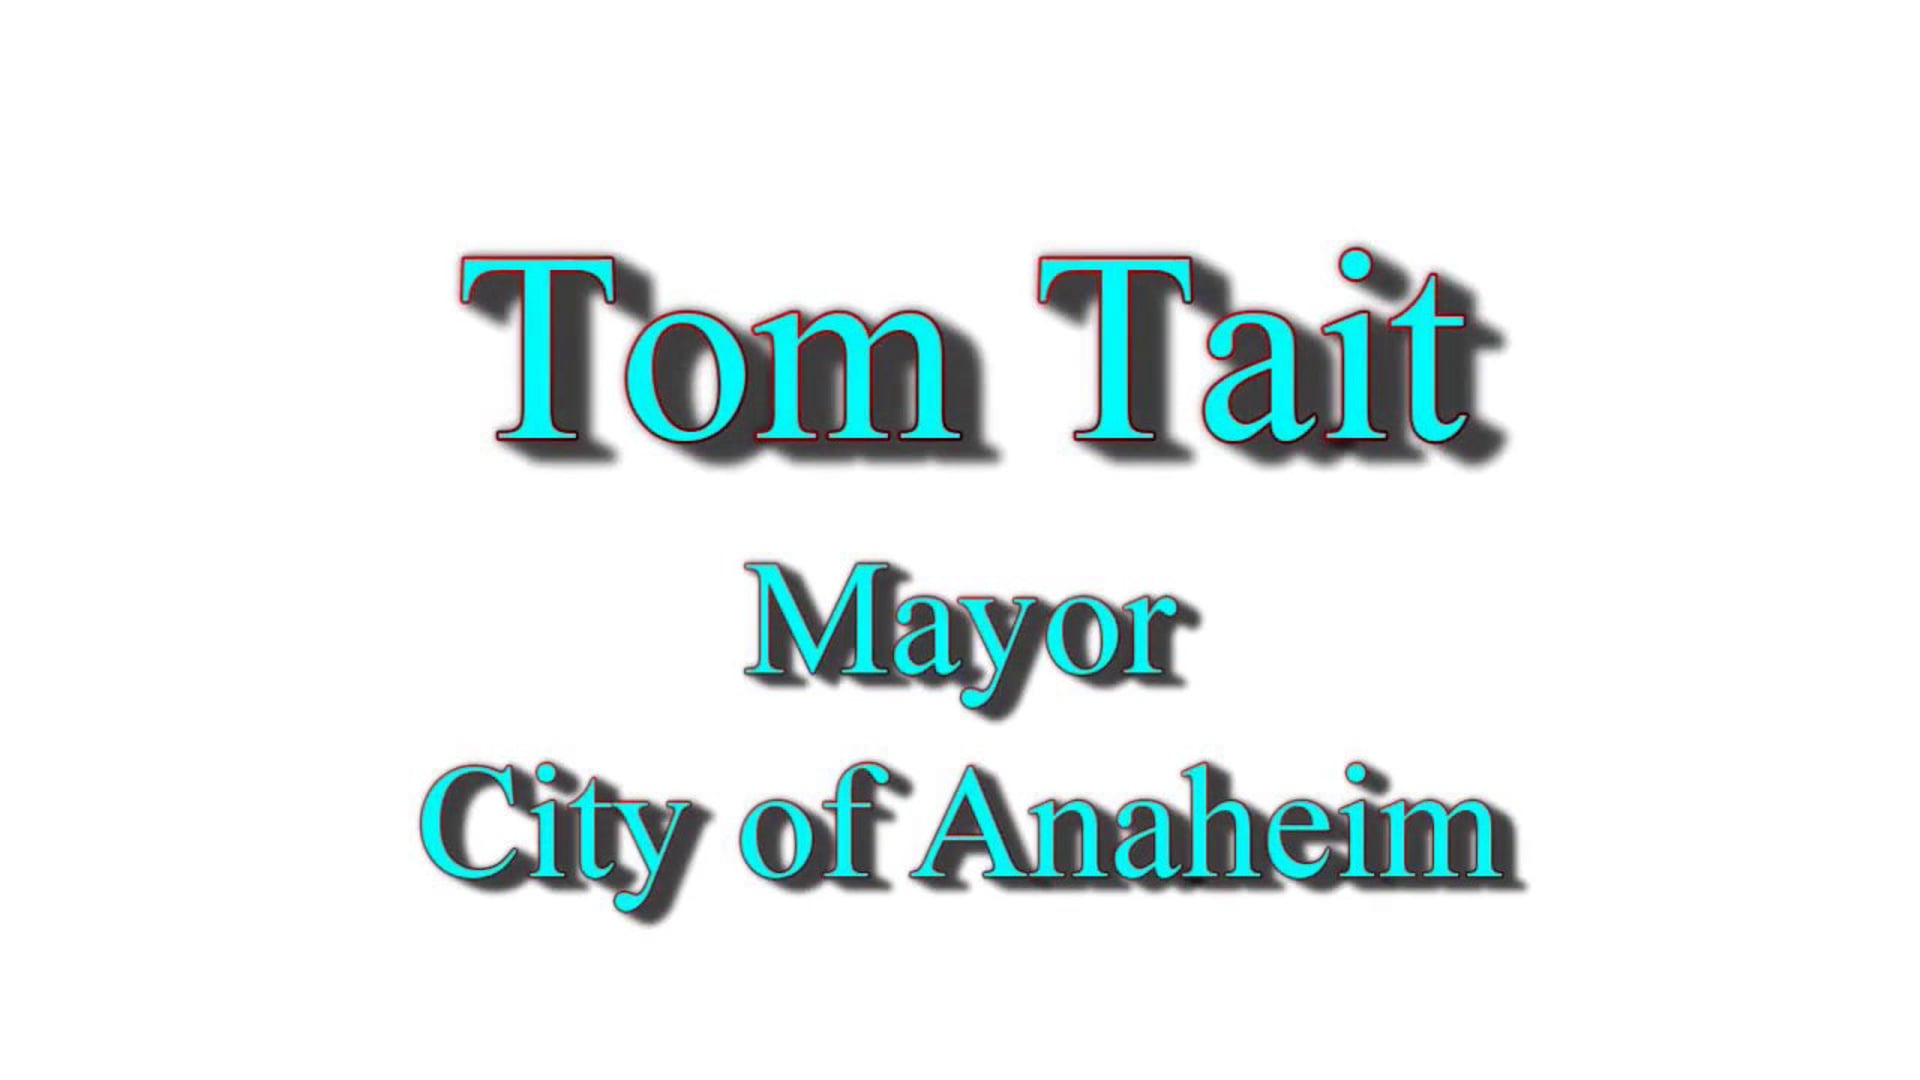 Tom Tait - Creating a Civic Culture Rooted in Kindness